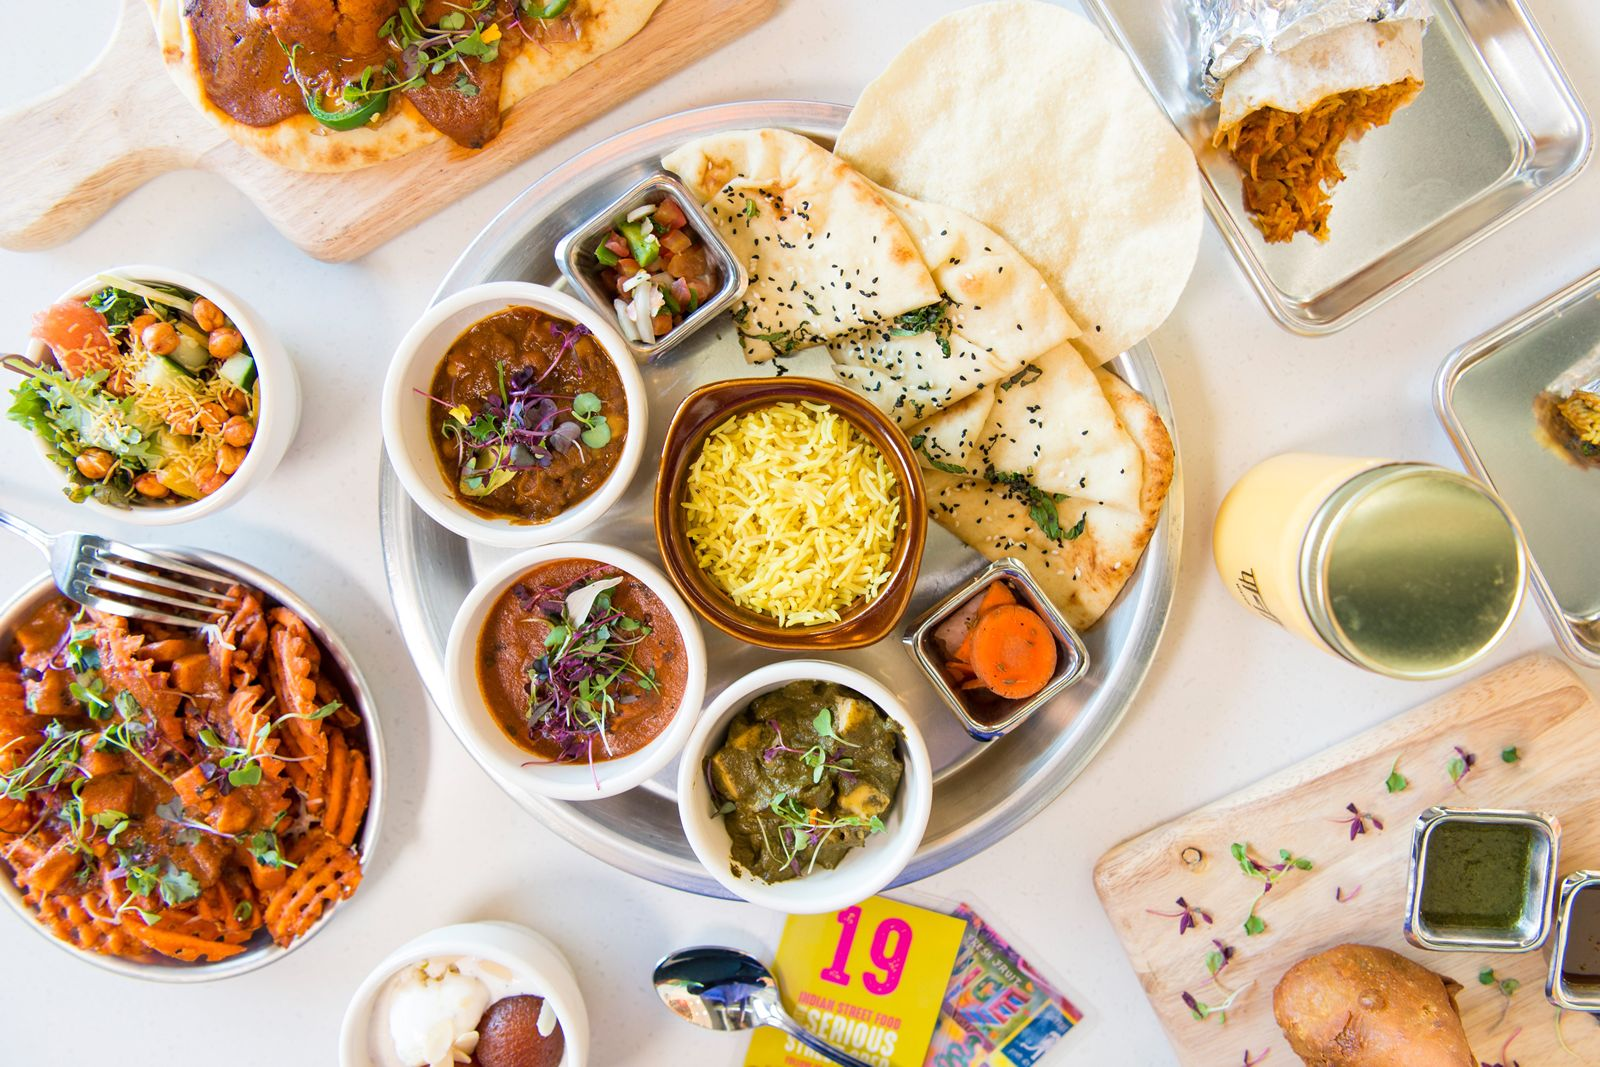 Curry Up Now Announces Highly-Anticipated Grand Opening of Hoboken Restaurant